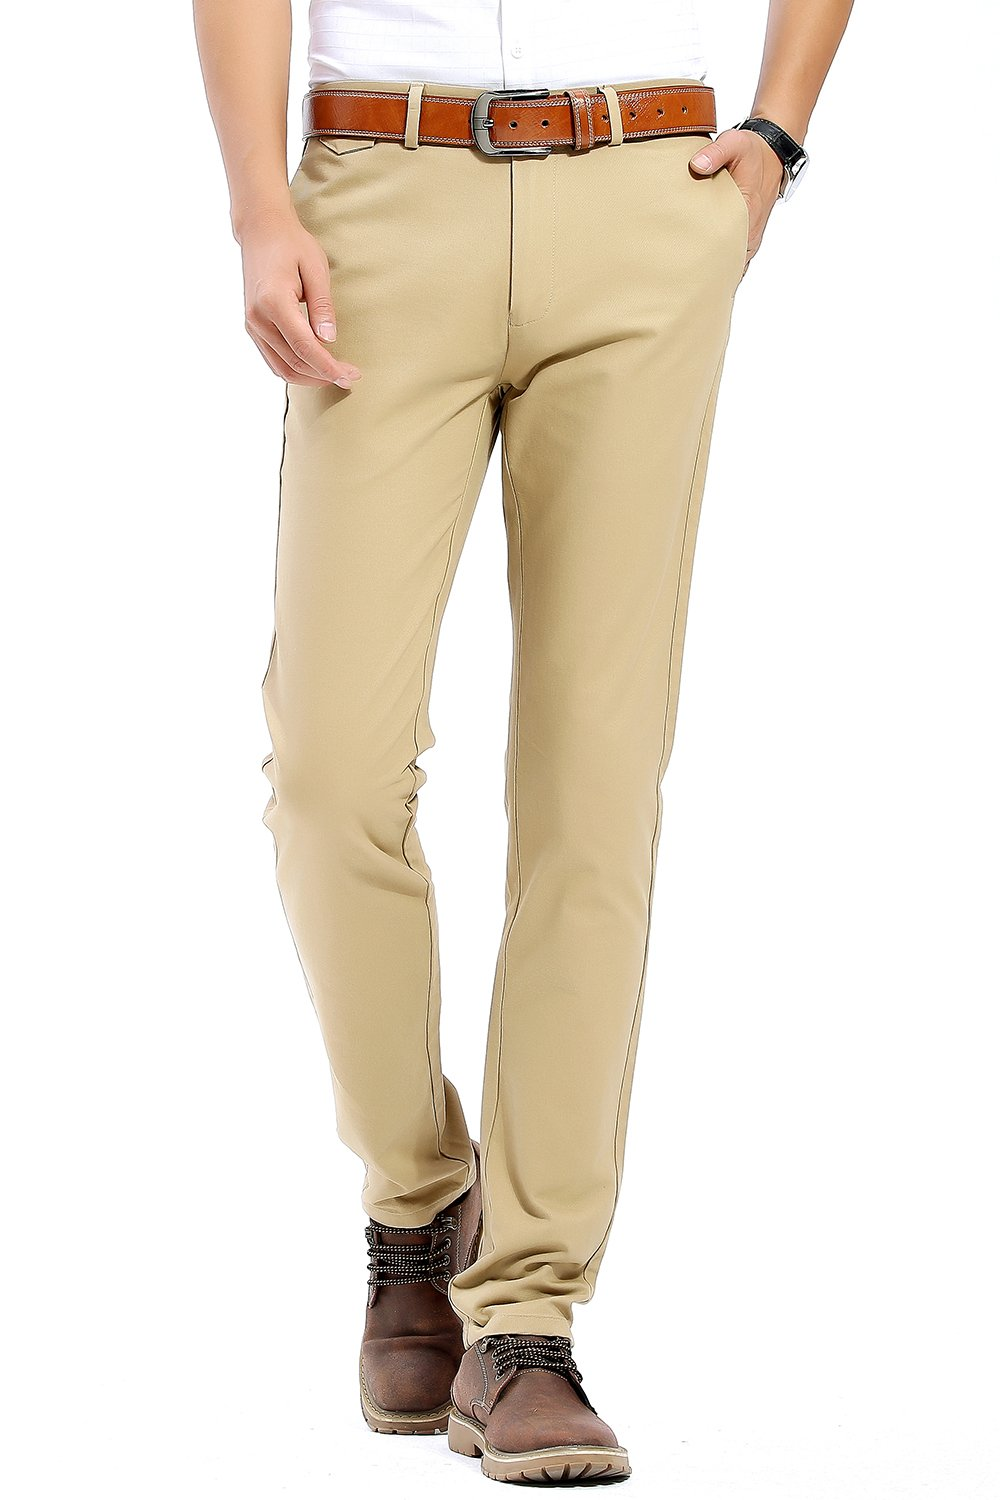 INFLATION Men's 100% Cotton Slightly Stretchy Slim Fit Casual Pants, Flat Front Trousers Dress Pants for Men